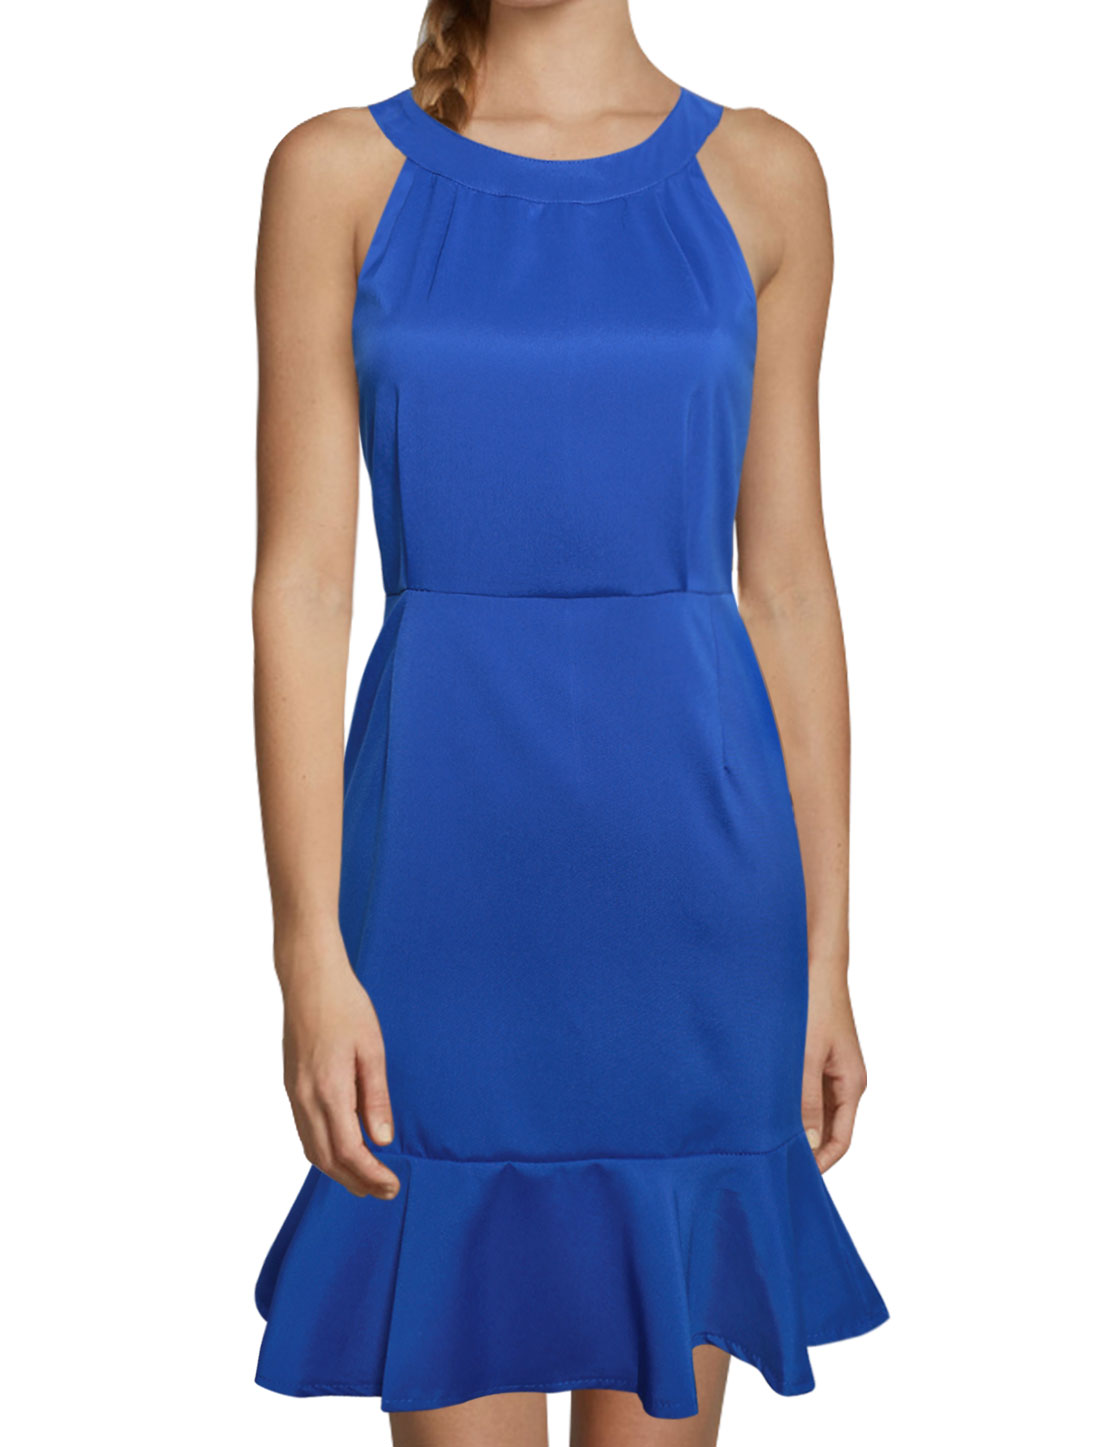 Women Sleeveless Ruffle Hem Halter Neck Sheath Dress Blue S